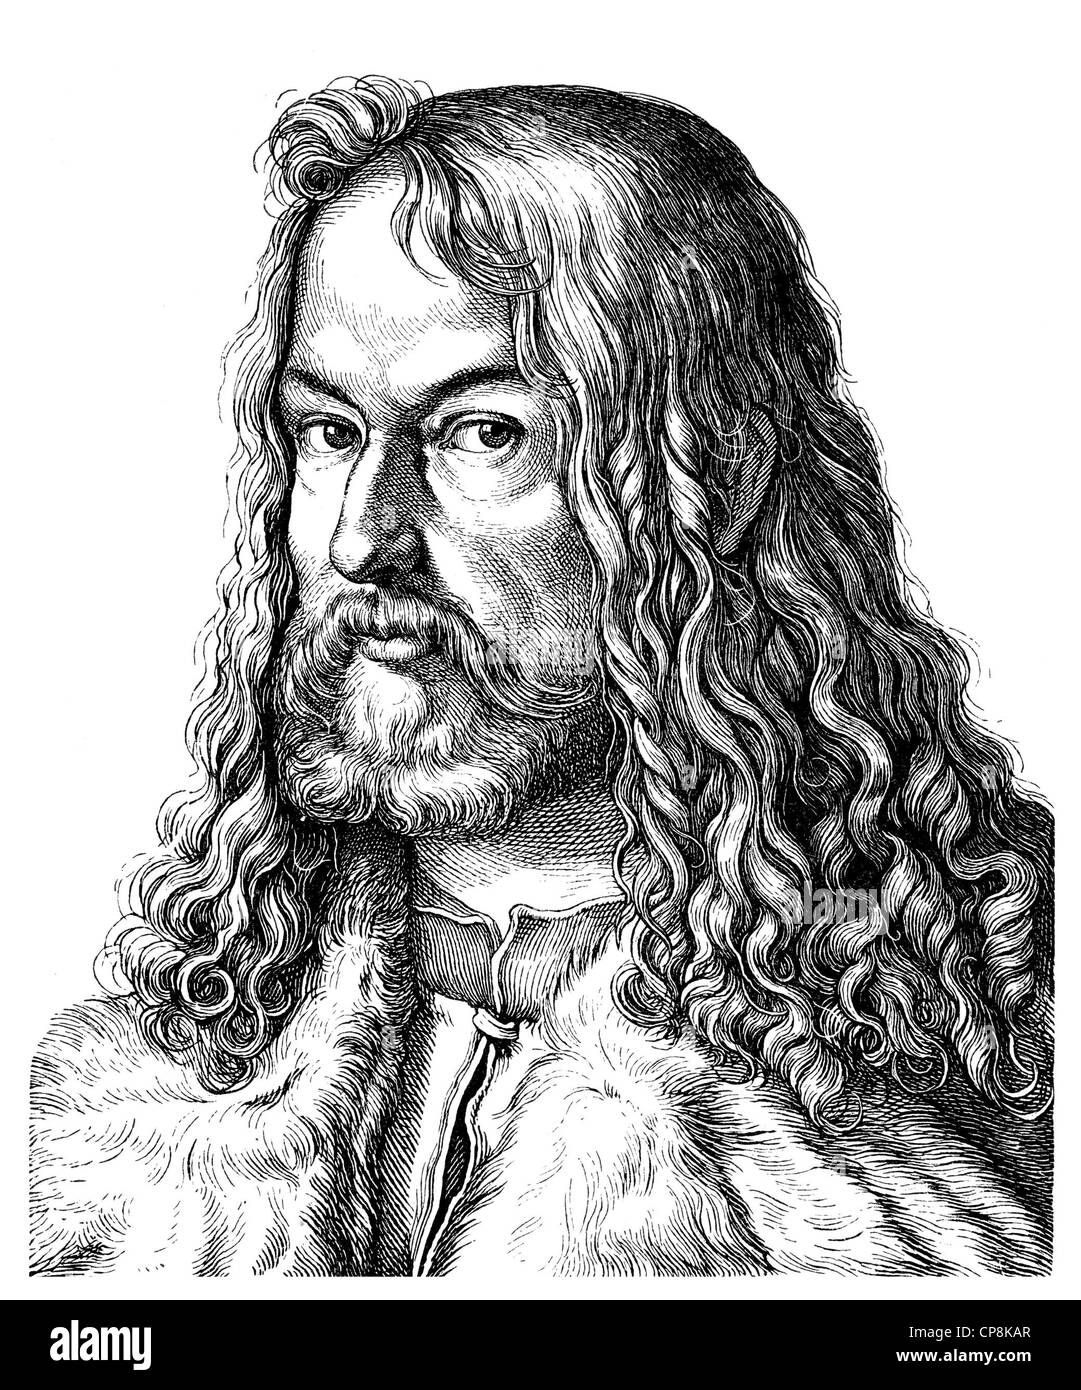 Albrecht Duerer the Younger, 1471 - 1528, a German painter, printmaker, mathematician and theorist at the time of - Stock Image